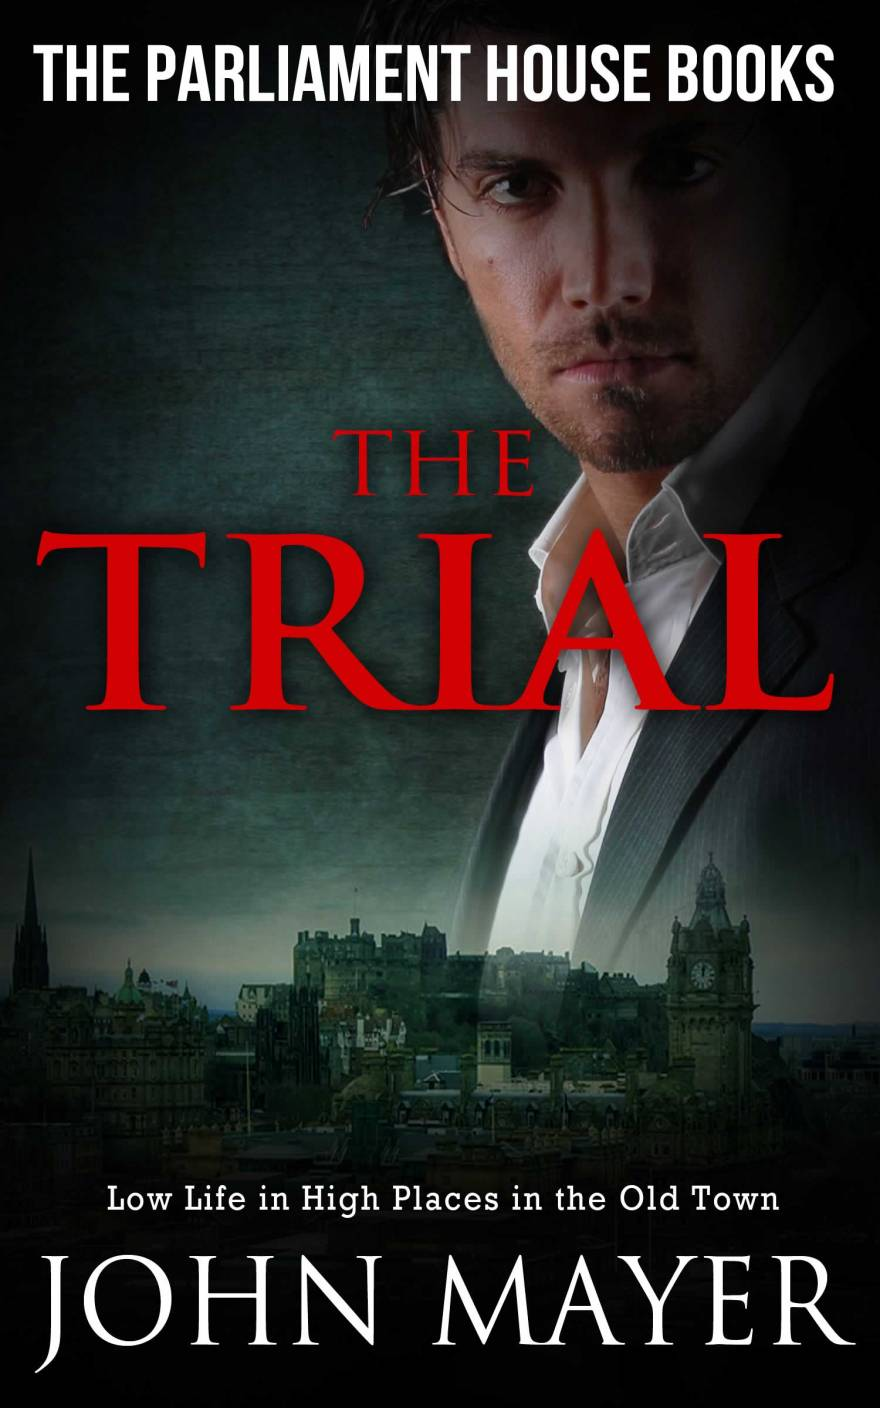 The Trial (Parliament House Books) by John Mayer on Alternative-Read.com